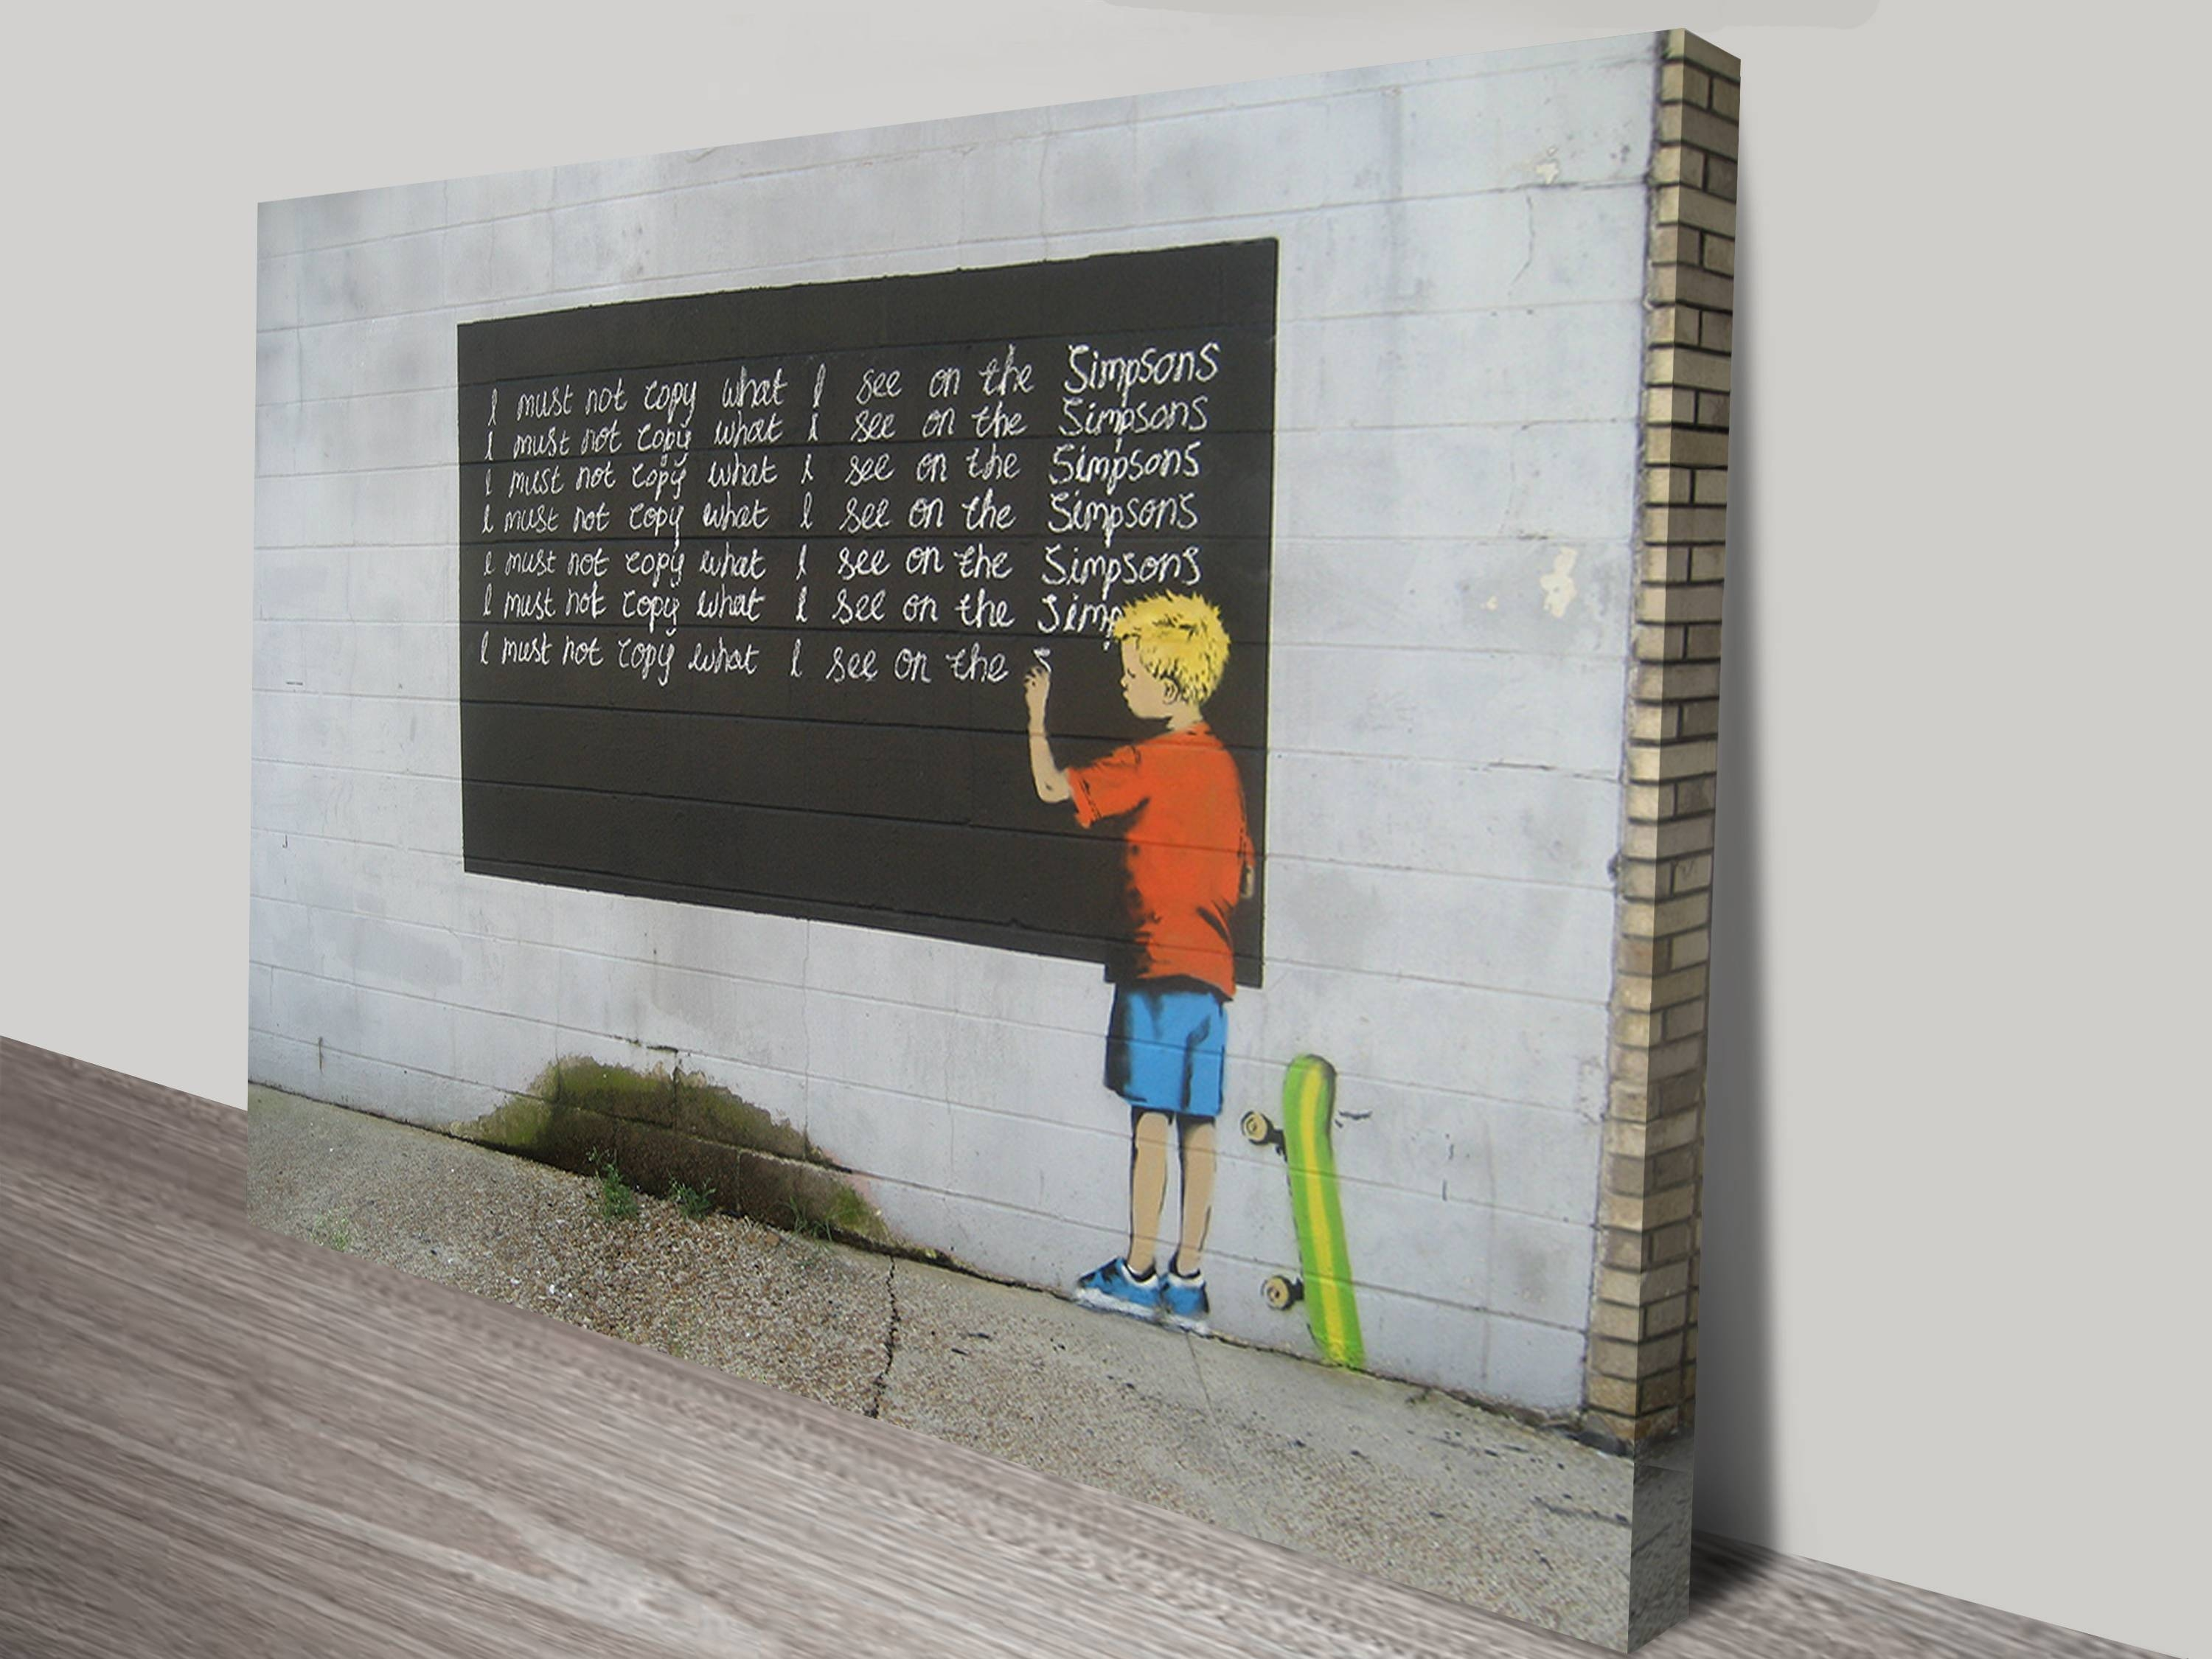 Simpsons Canvas Art Print Sydney Within Latest Banksy Wall Art Canvas (View 6 of 20)